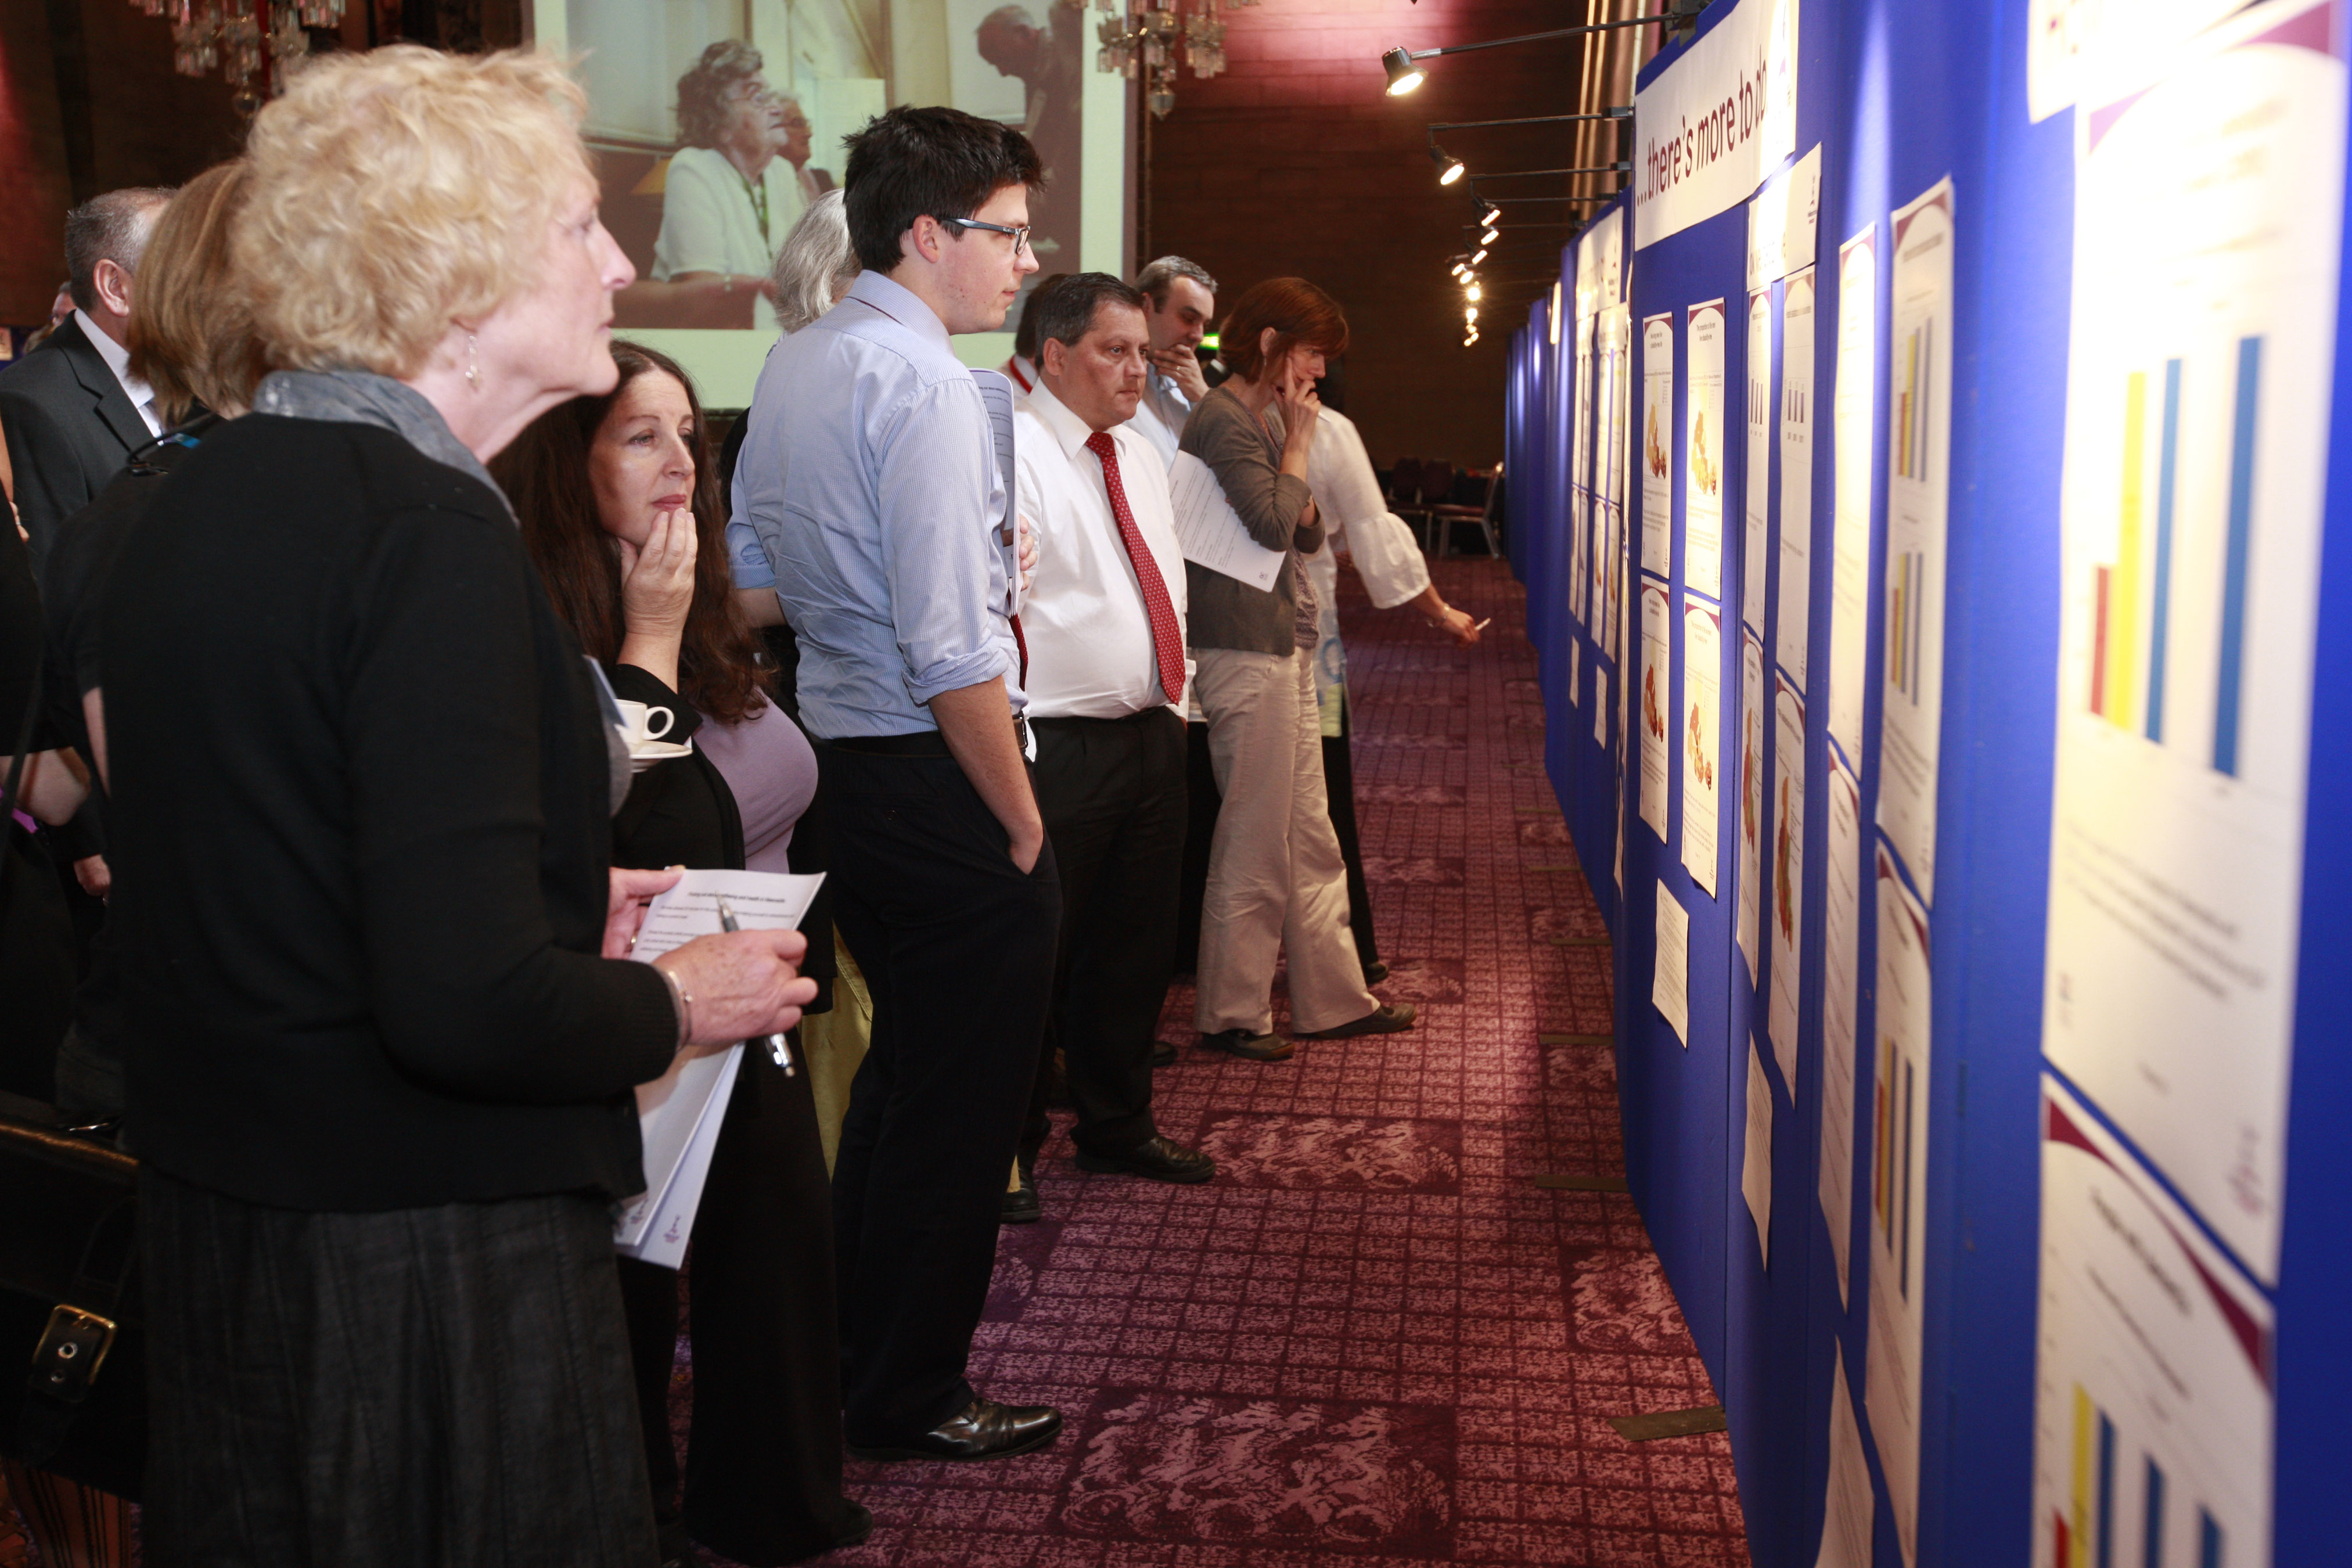 Participants browsing the posters